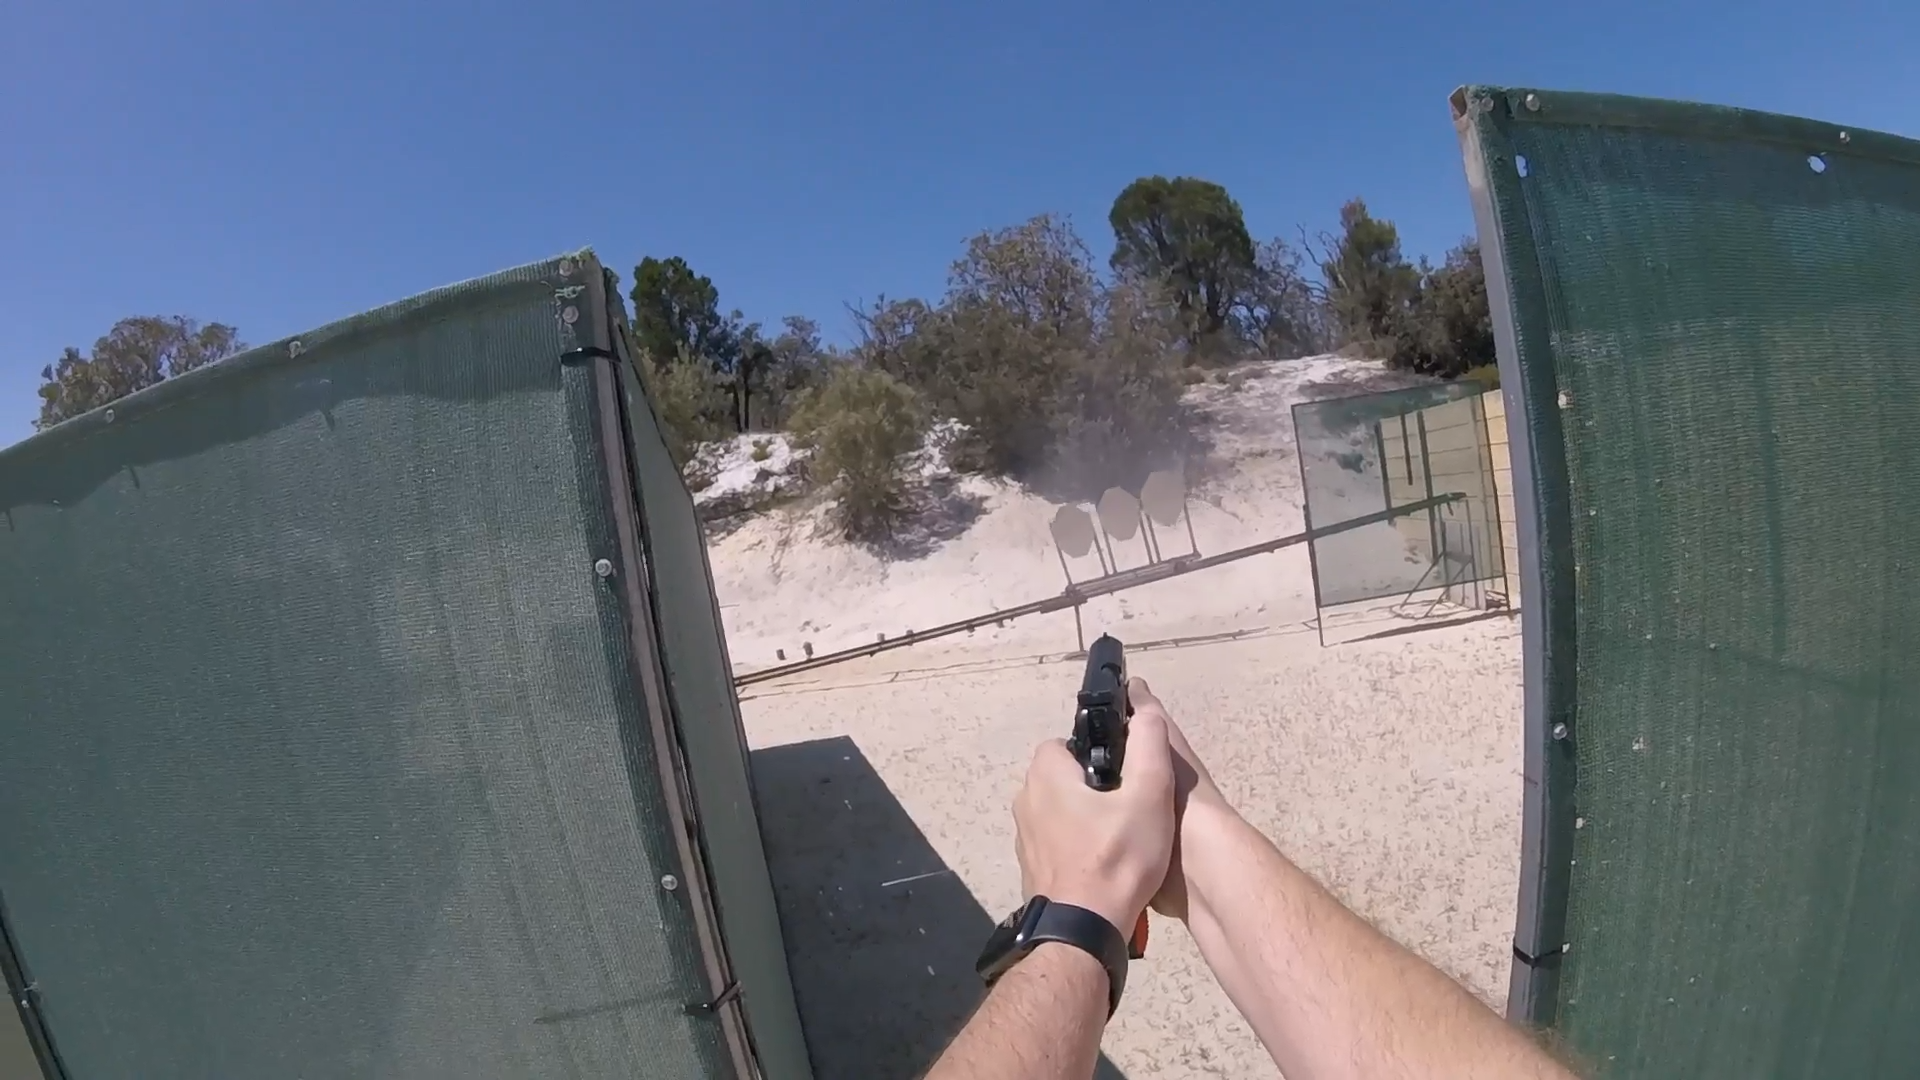 Pine Valley Pistol Club